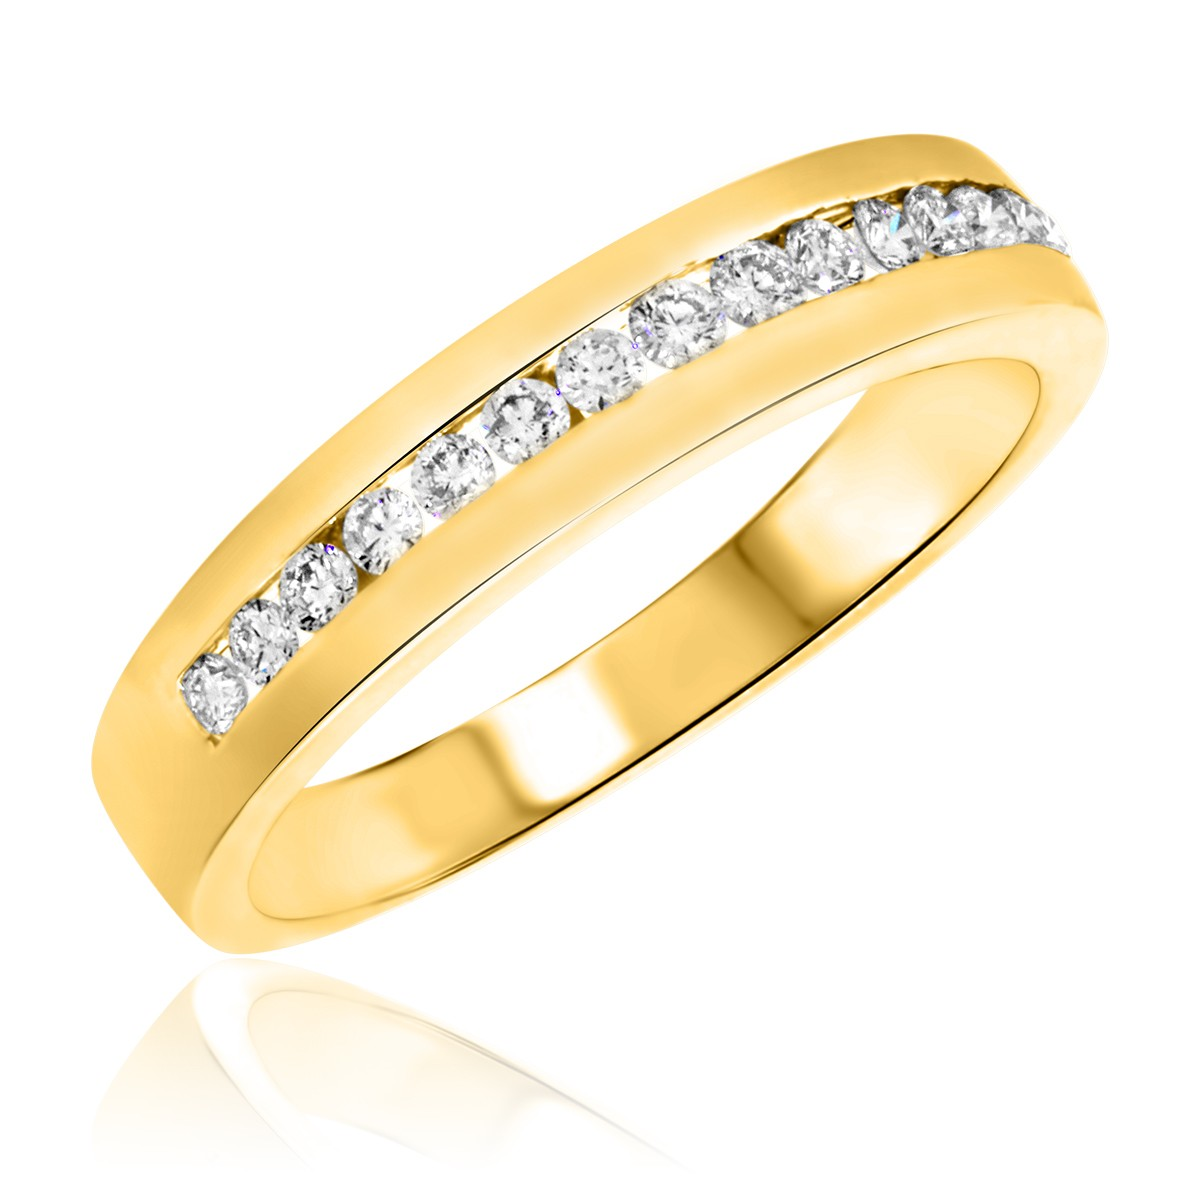 3/8 CT. T.W. Diamond Men's Wedding Band 14K Yellow Gold